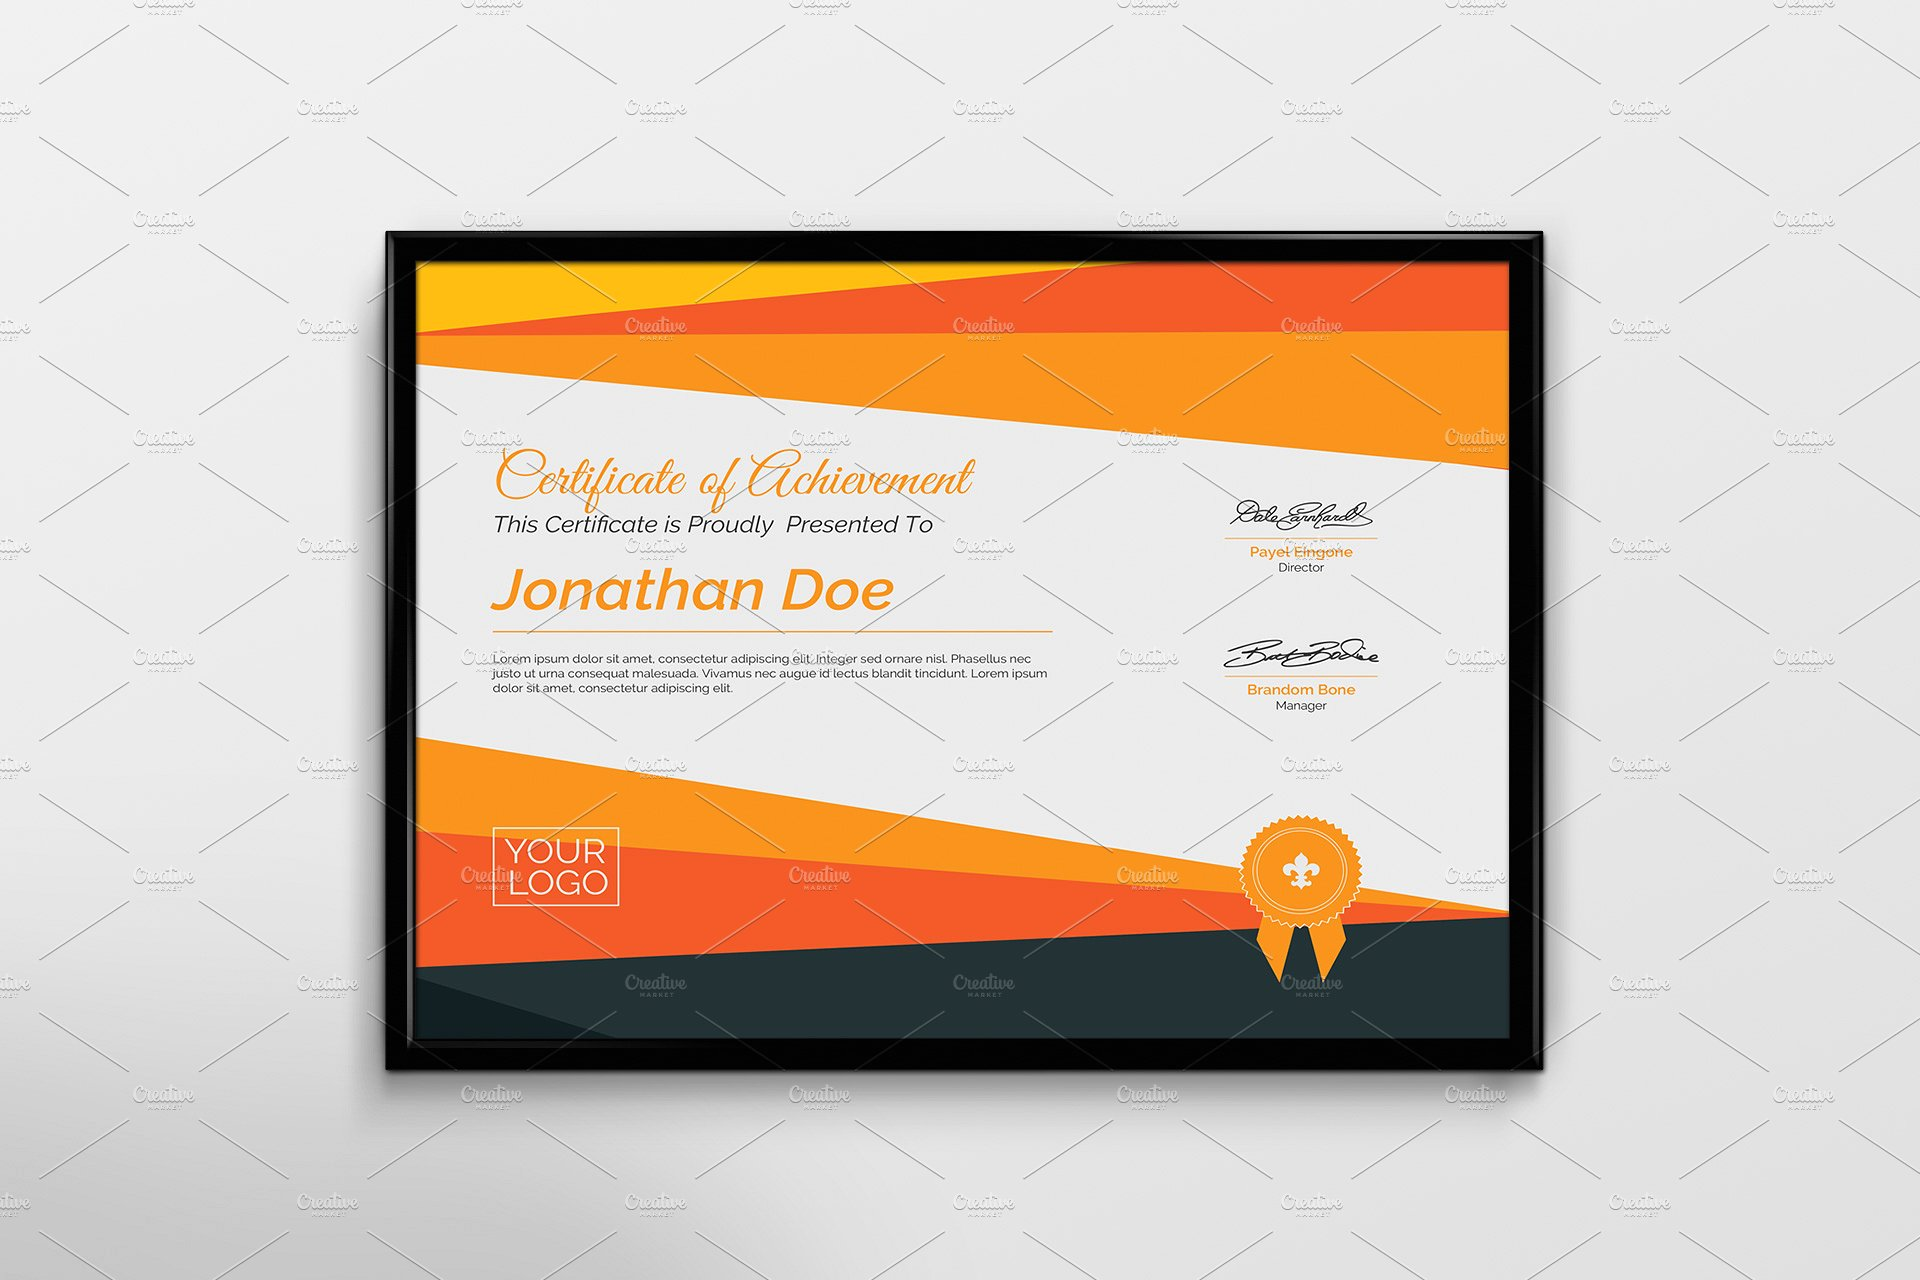 5+ Certificate Templates For Awards - Templates.vip